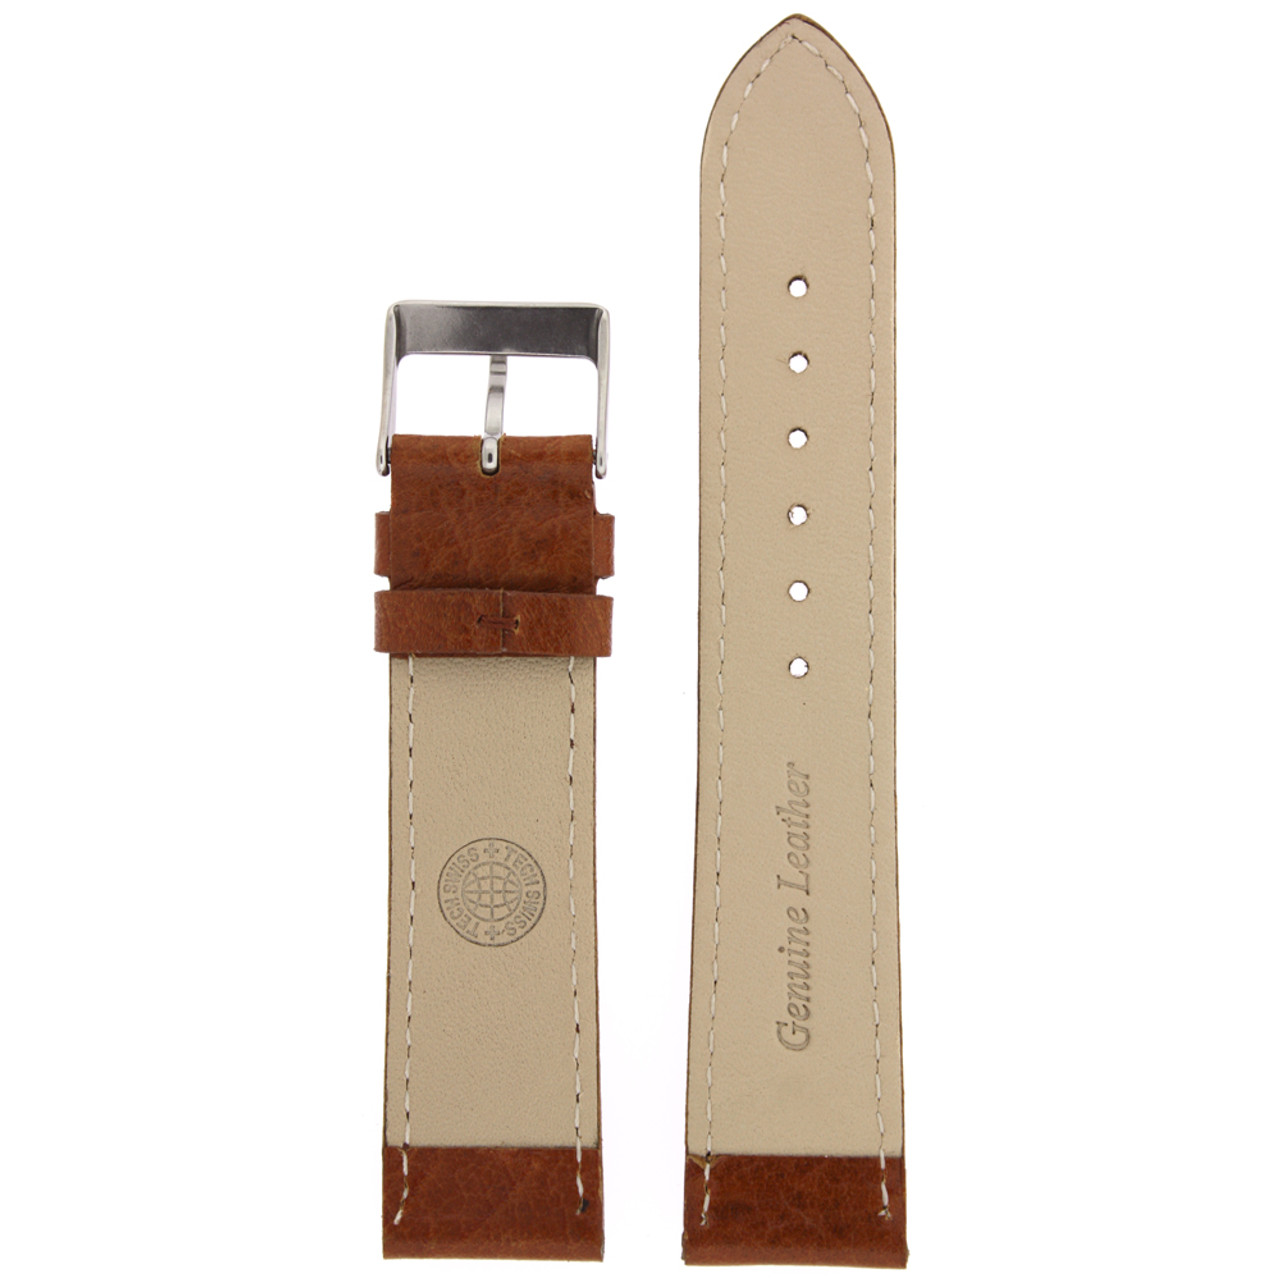 Leather Watch Band in Honey Brown by Tech Swiss - Bottom View - Main